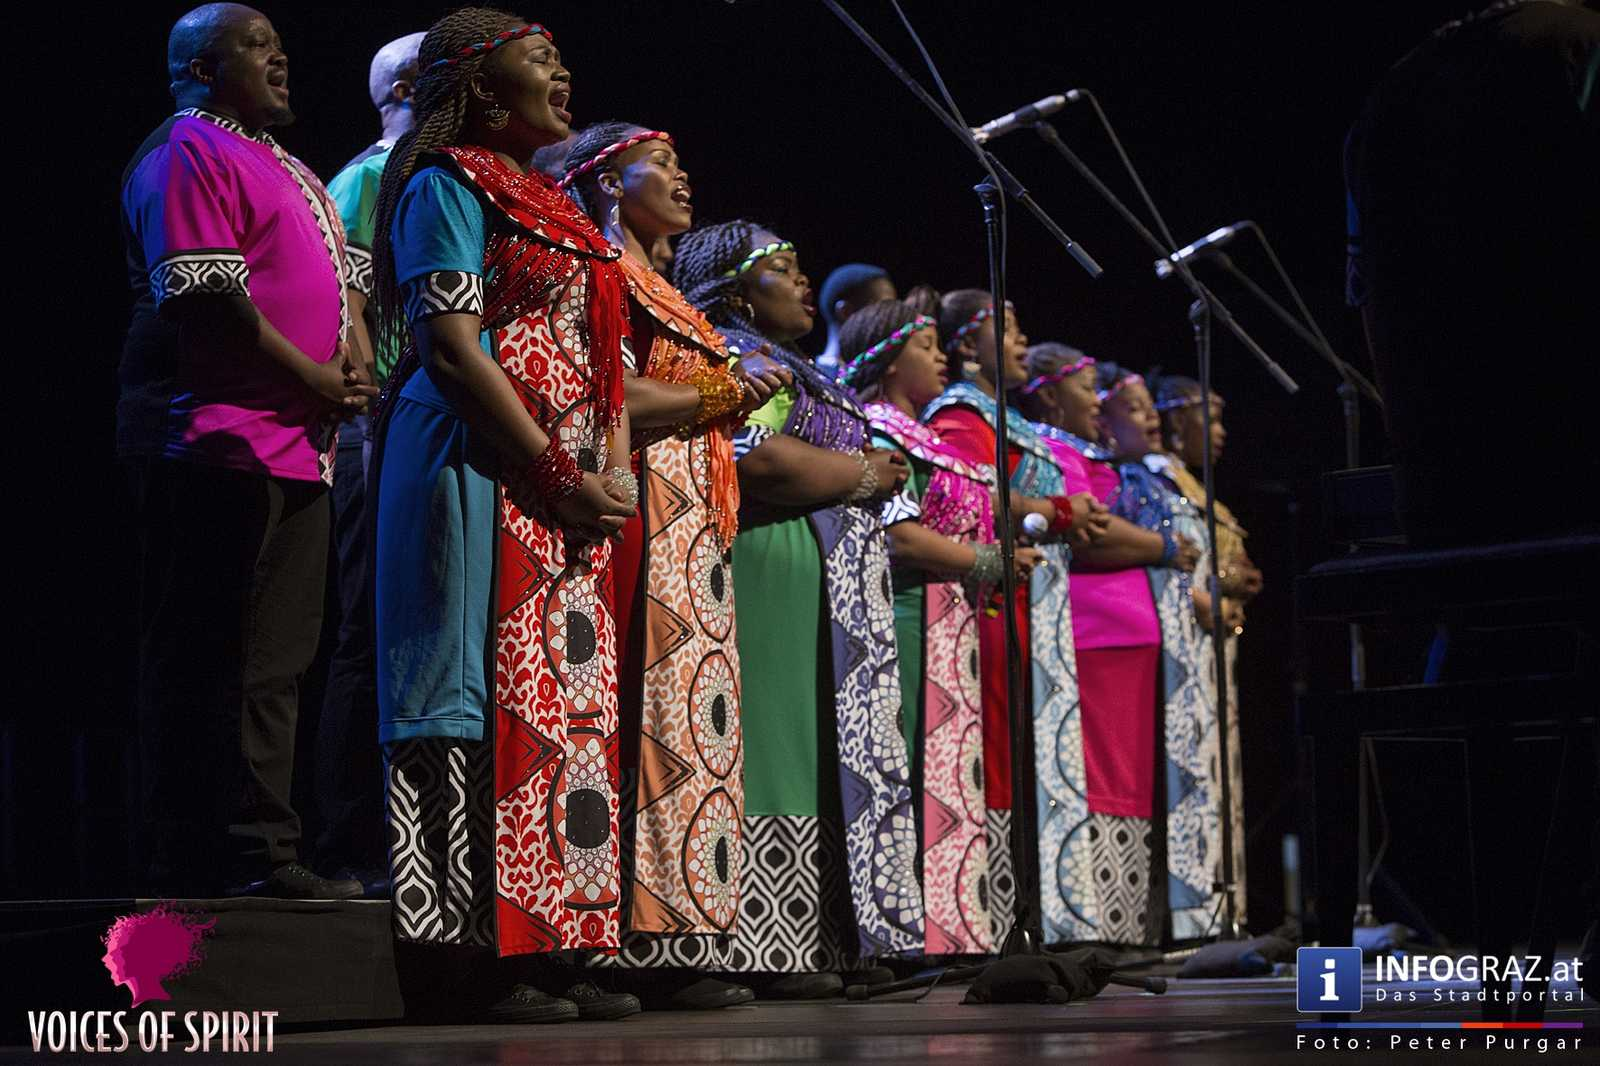 soweto gospel choir internationales chorfestival statdthalle graz voices of spirit eroeffnung festivals 2016 105